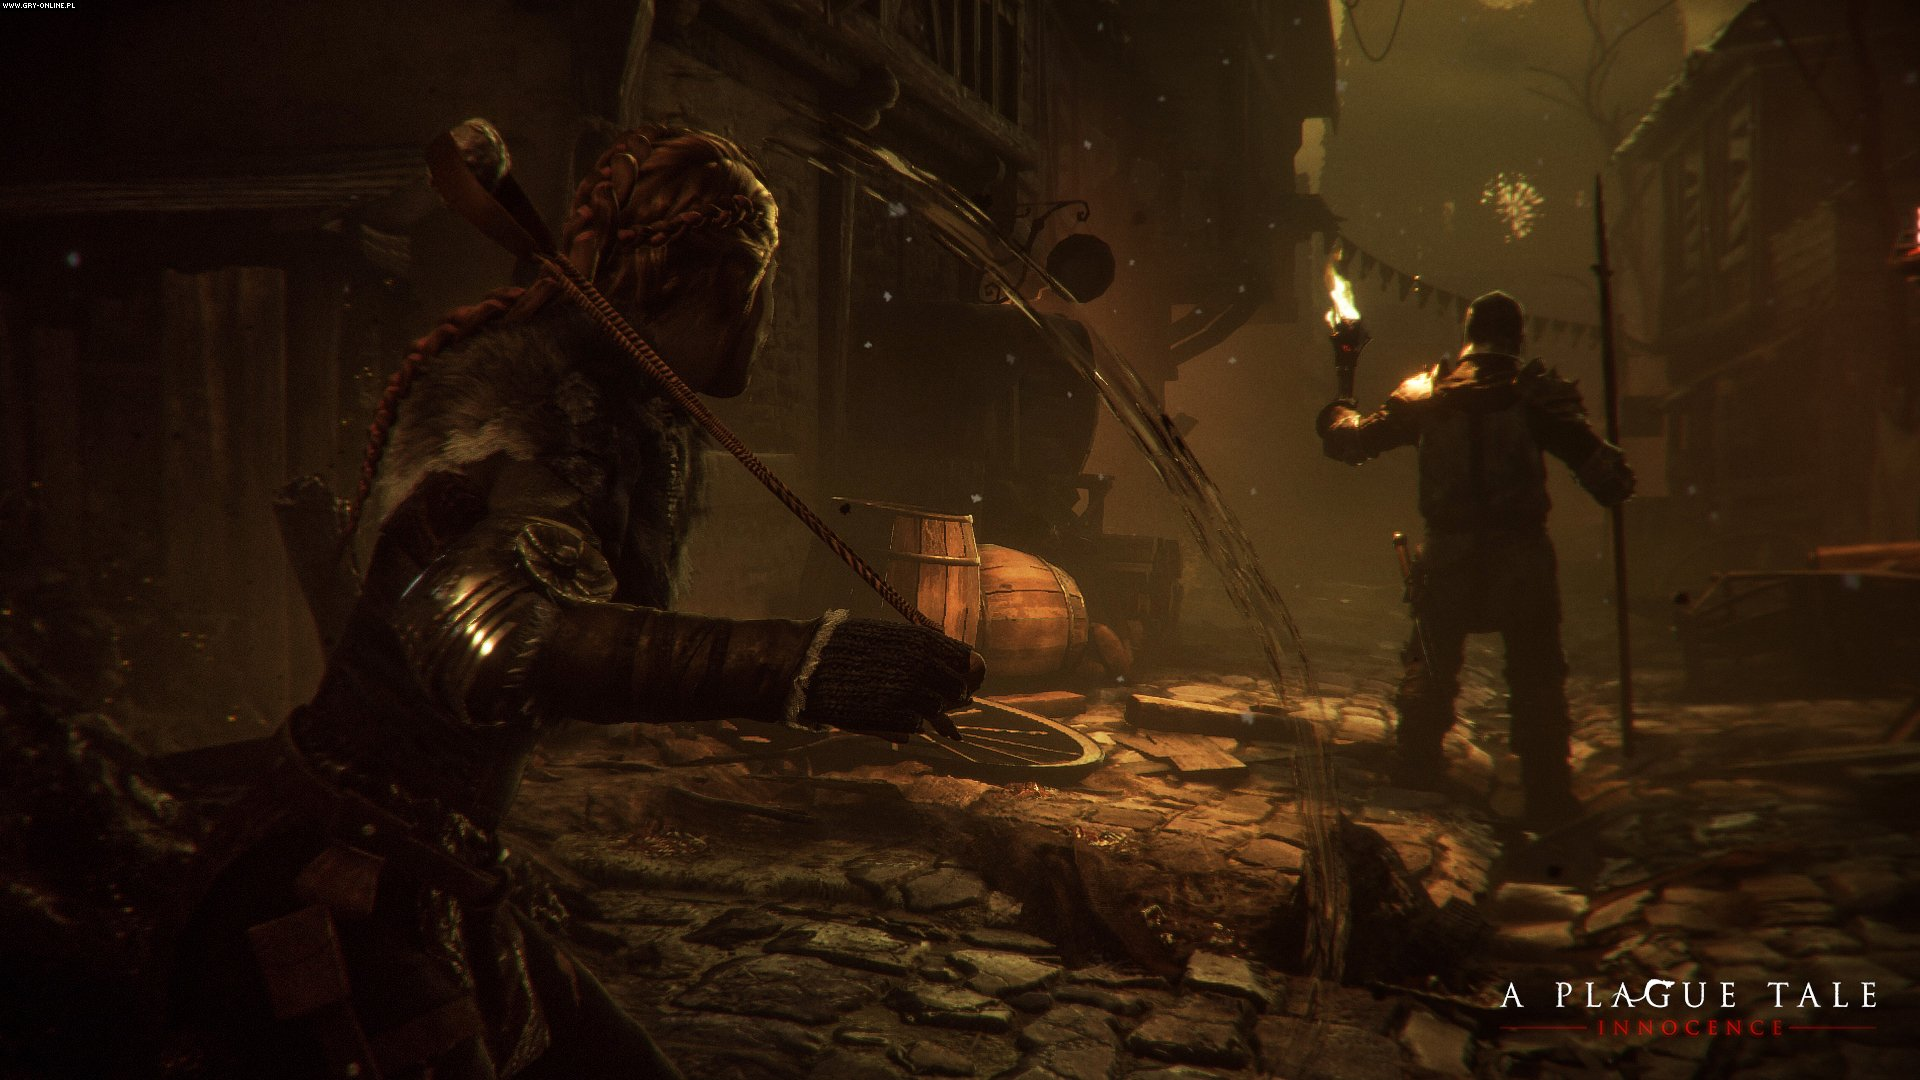 A Plague Tale: Innocence PC, PS4, XONE Games Image 8/30, Asobo Studio, Focus Home Interactive